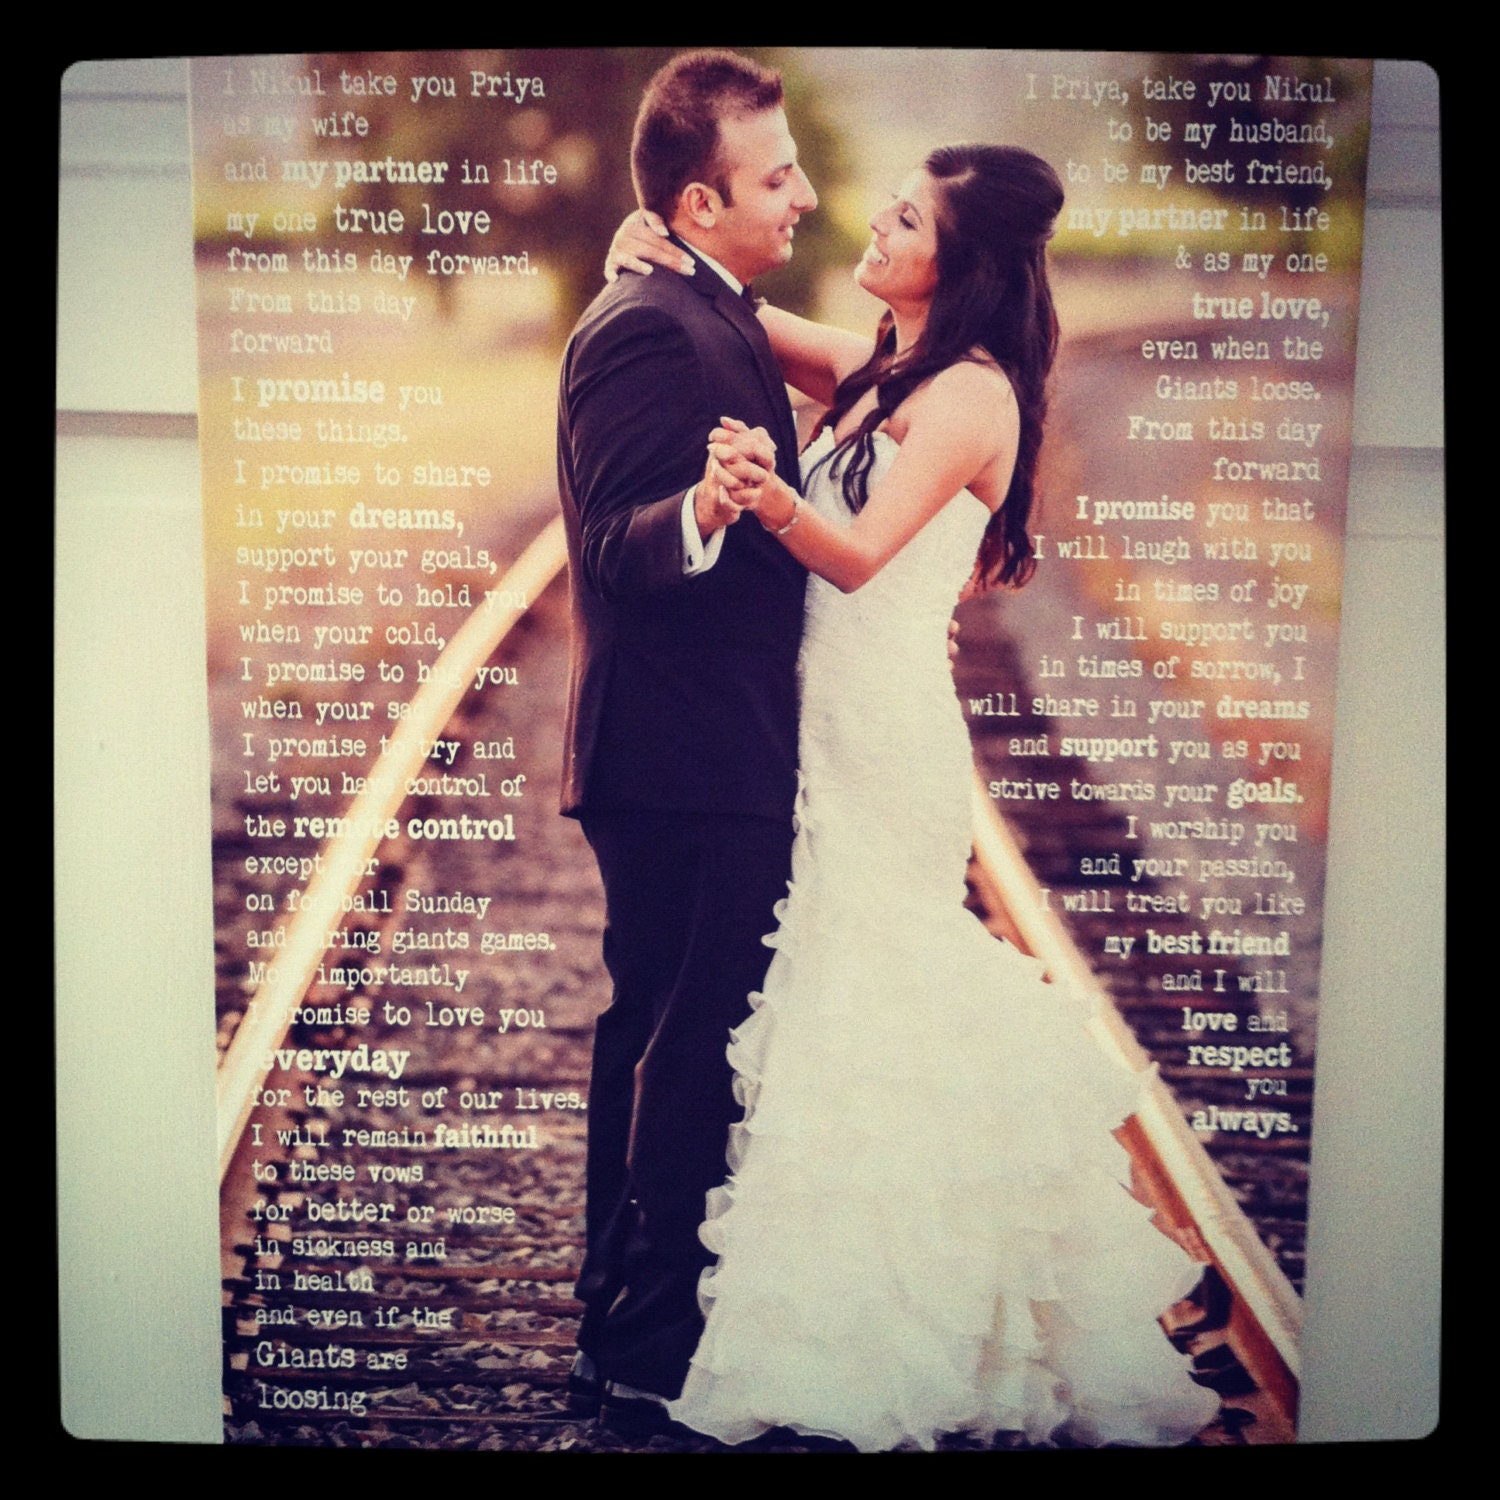 Wedding Song For Bridal Party: Photo Canvas Personalized With Words 20x30 Wedding Photo